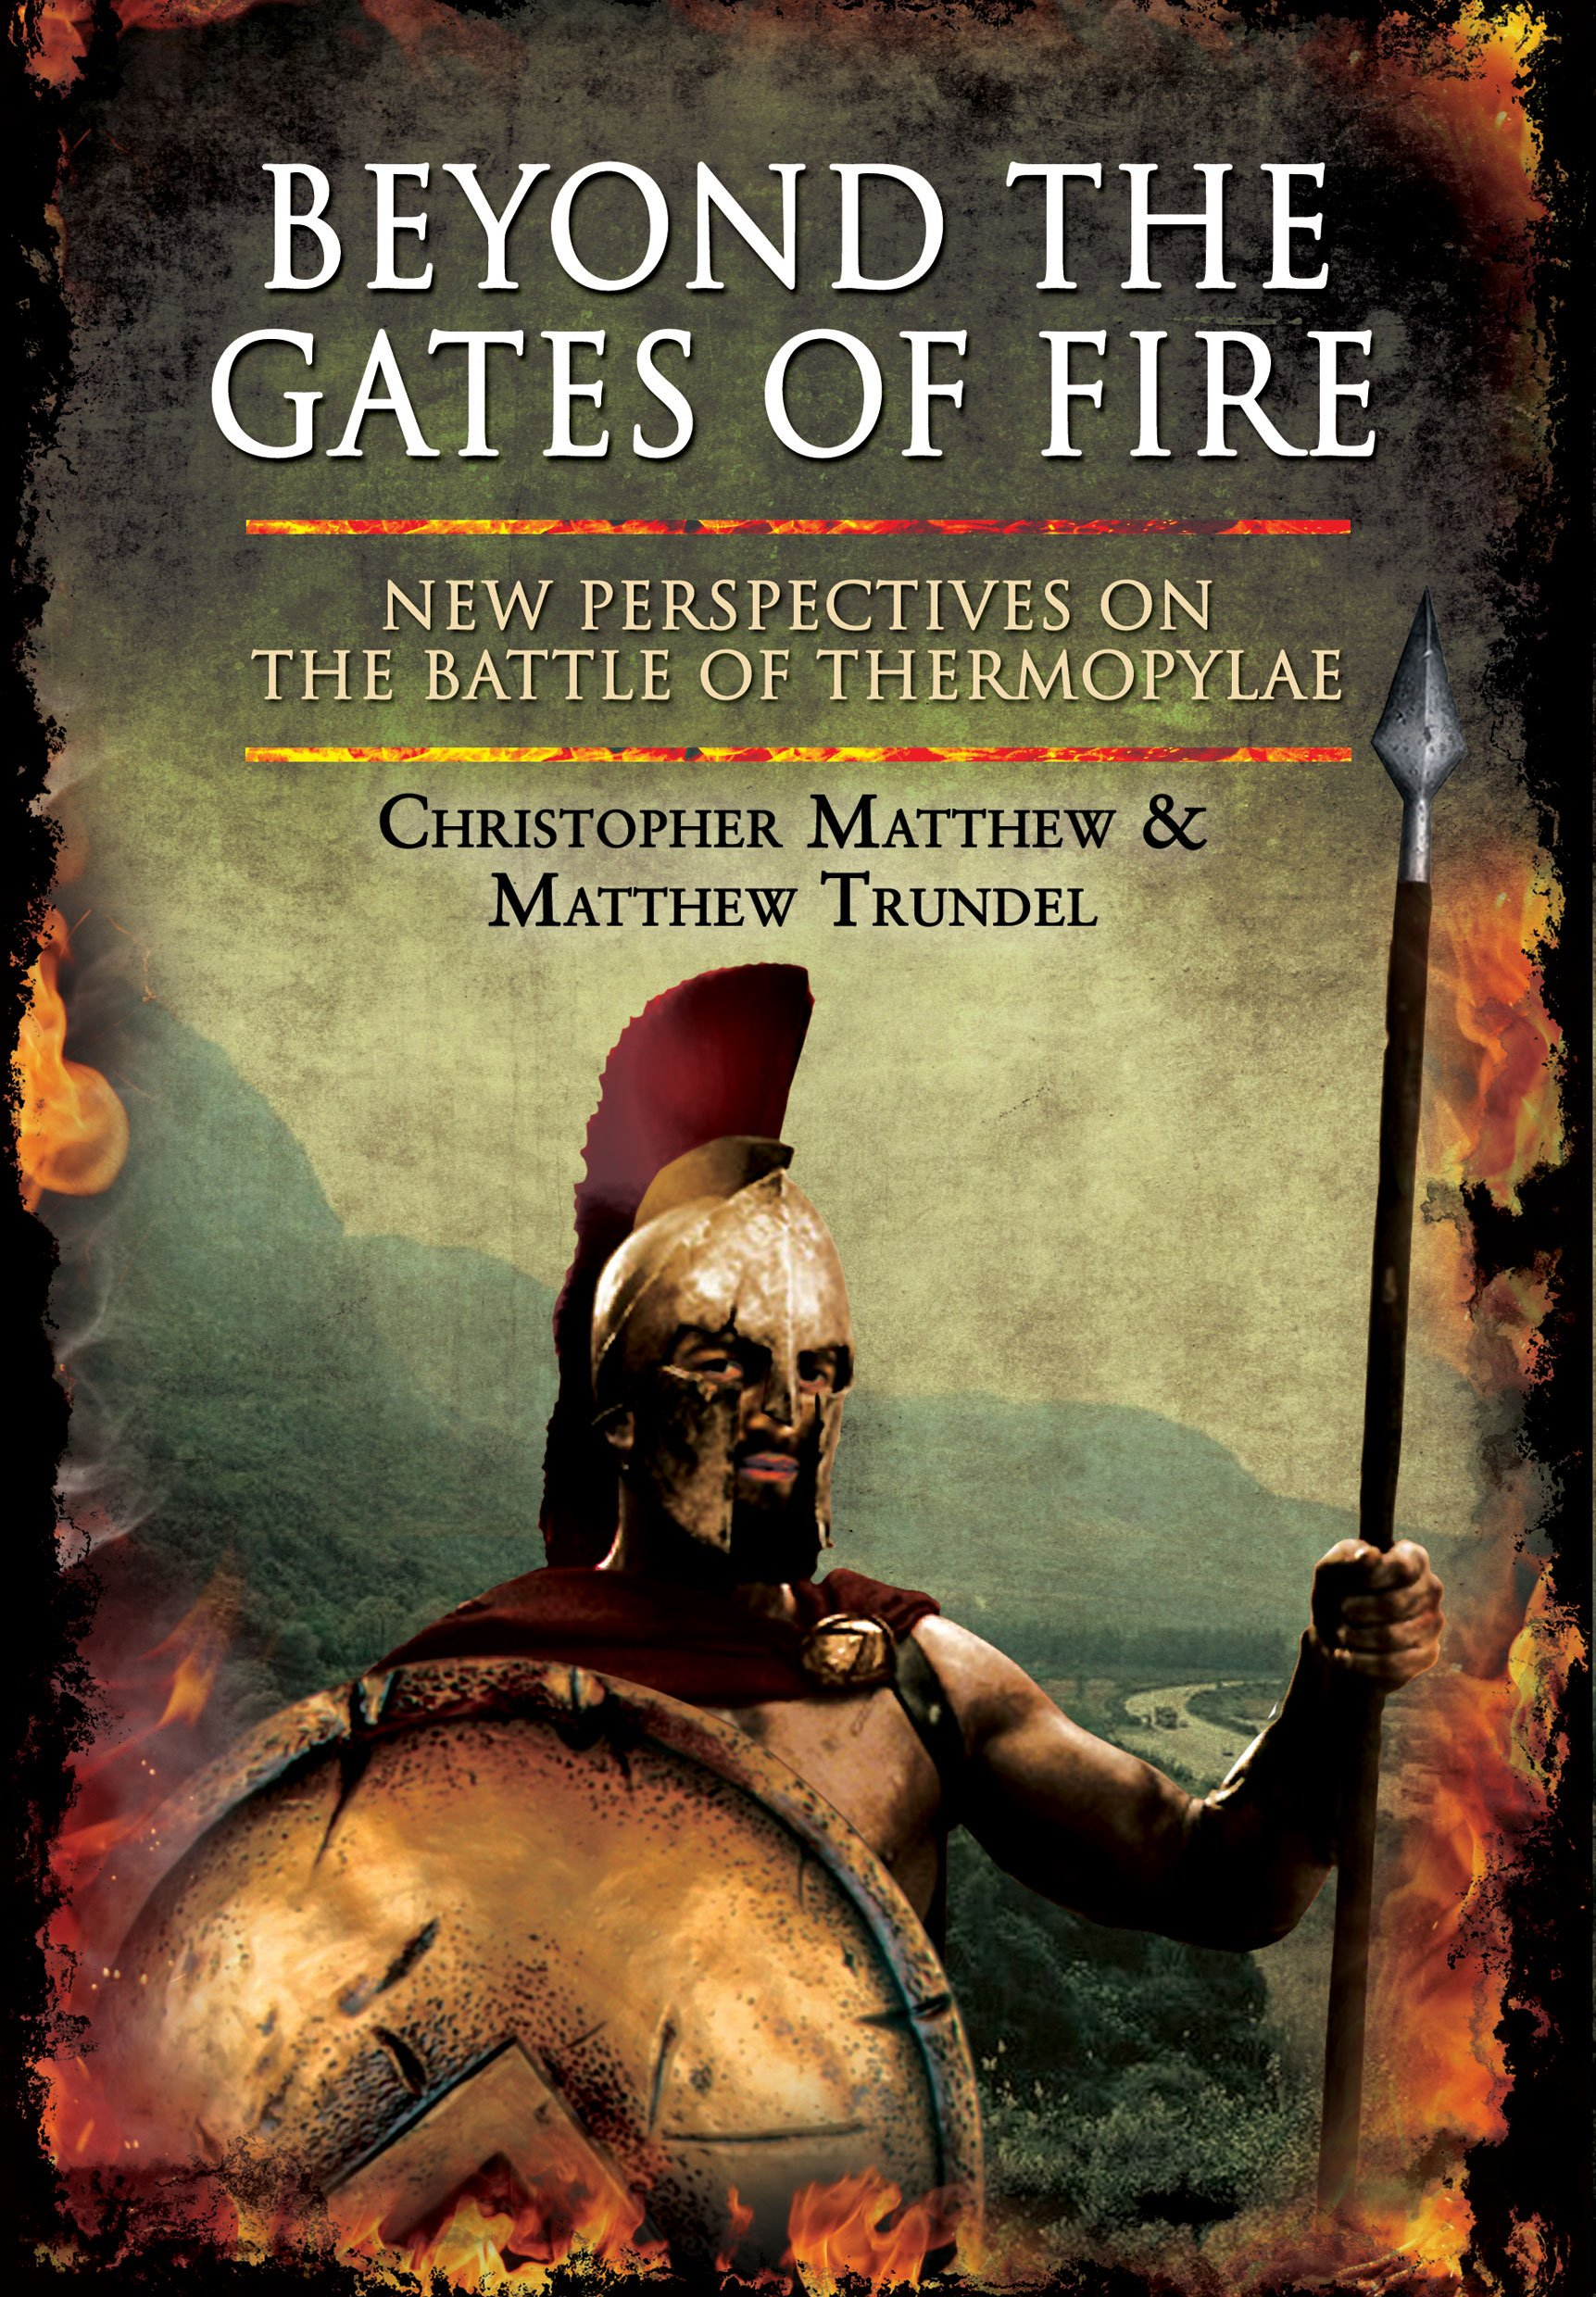 beyond the gates of fire new perspectives on the battle of beyond the gates of fire new perspectives on the battle of thermopylae christopher matthew matthew trundel 9781848847910 com books